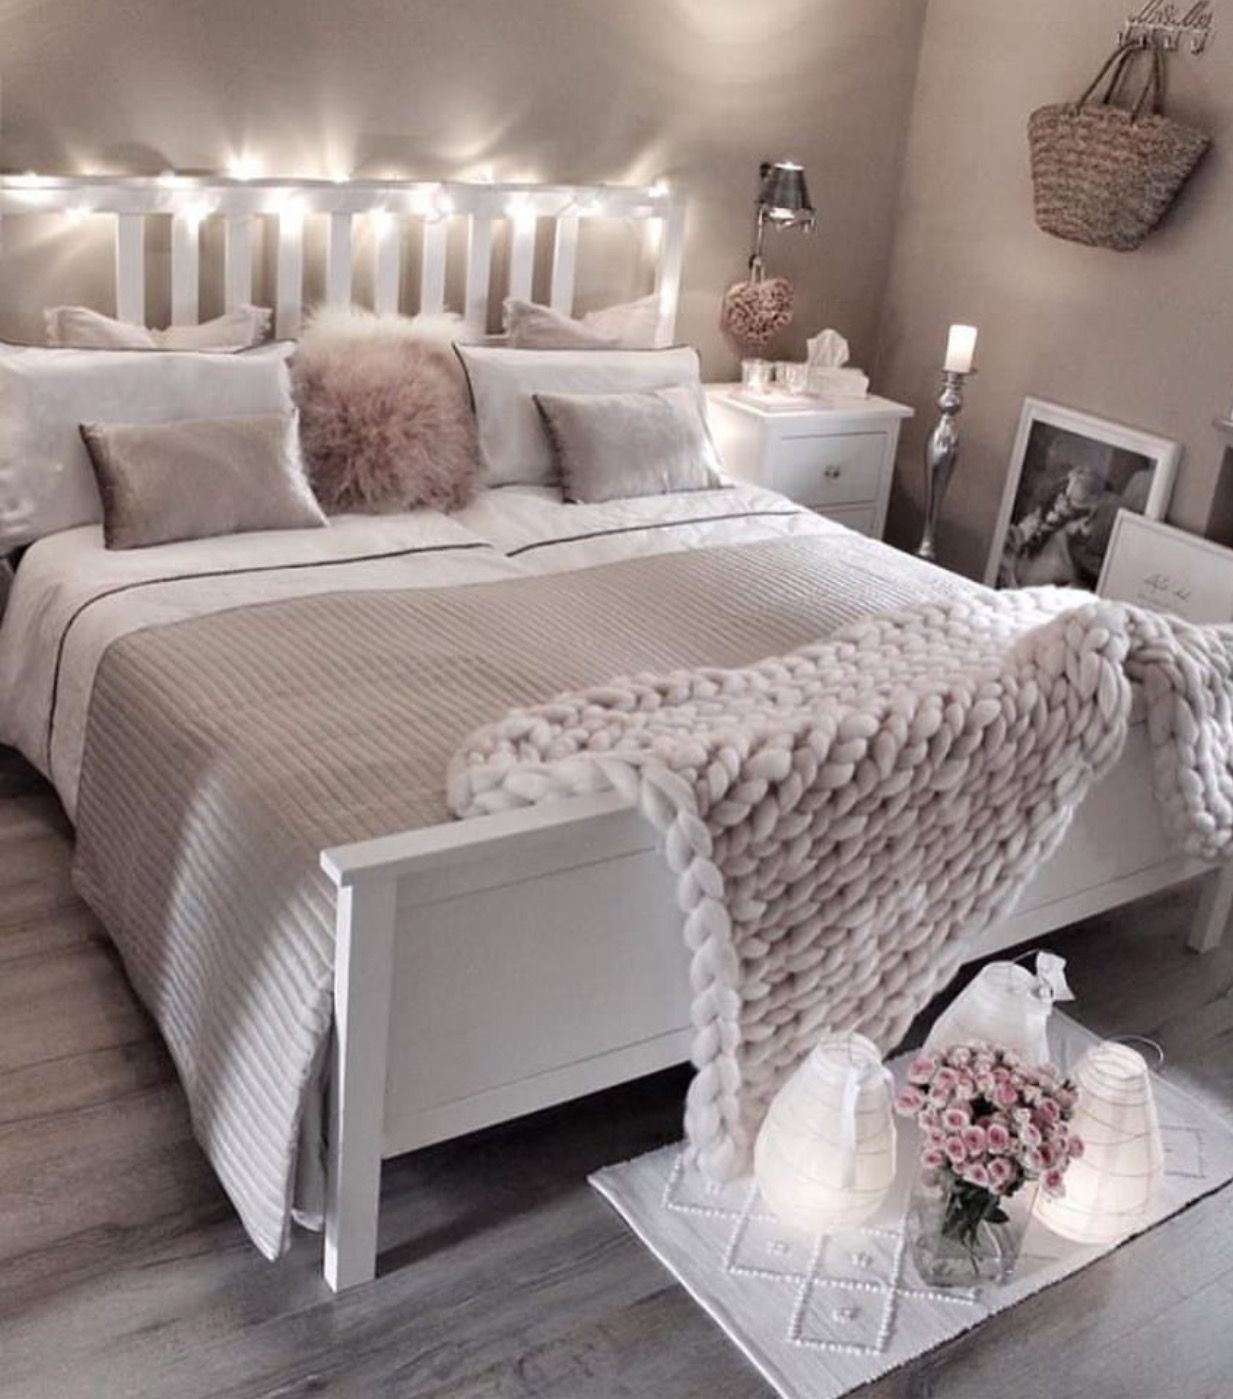 Pin By Tatyana Suber On Cute Bedroom Ideas Bedroom Ideas For Small Rooms Women Small Room Bedroom Stylish Bedroom